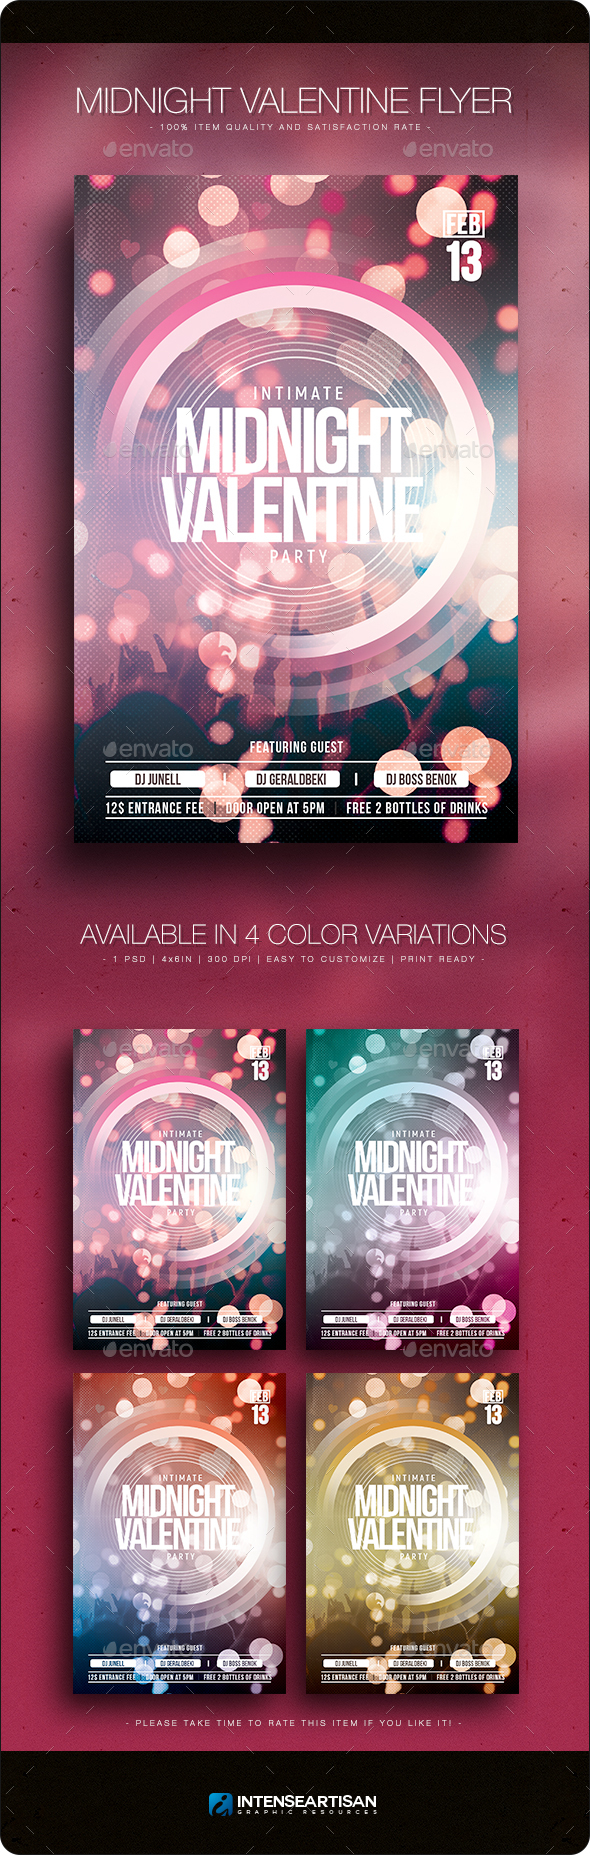 Midnight Valentine - Flyer Template